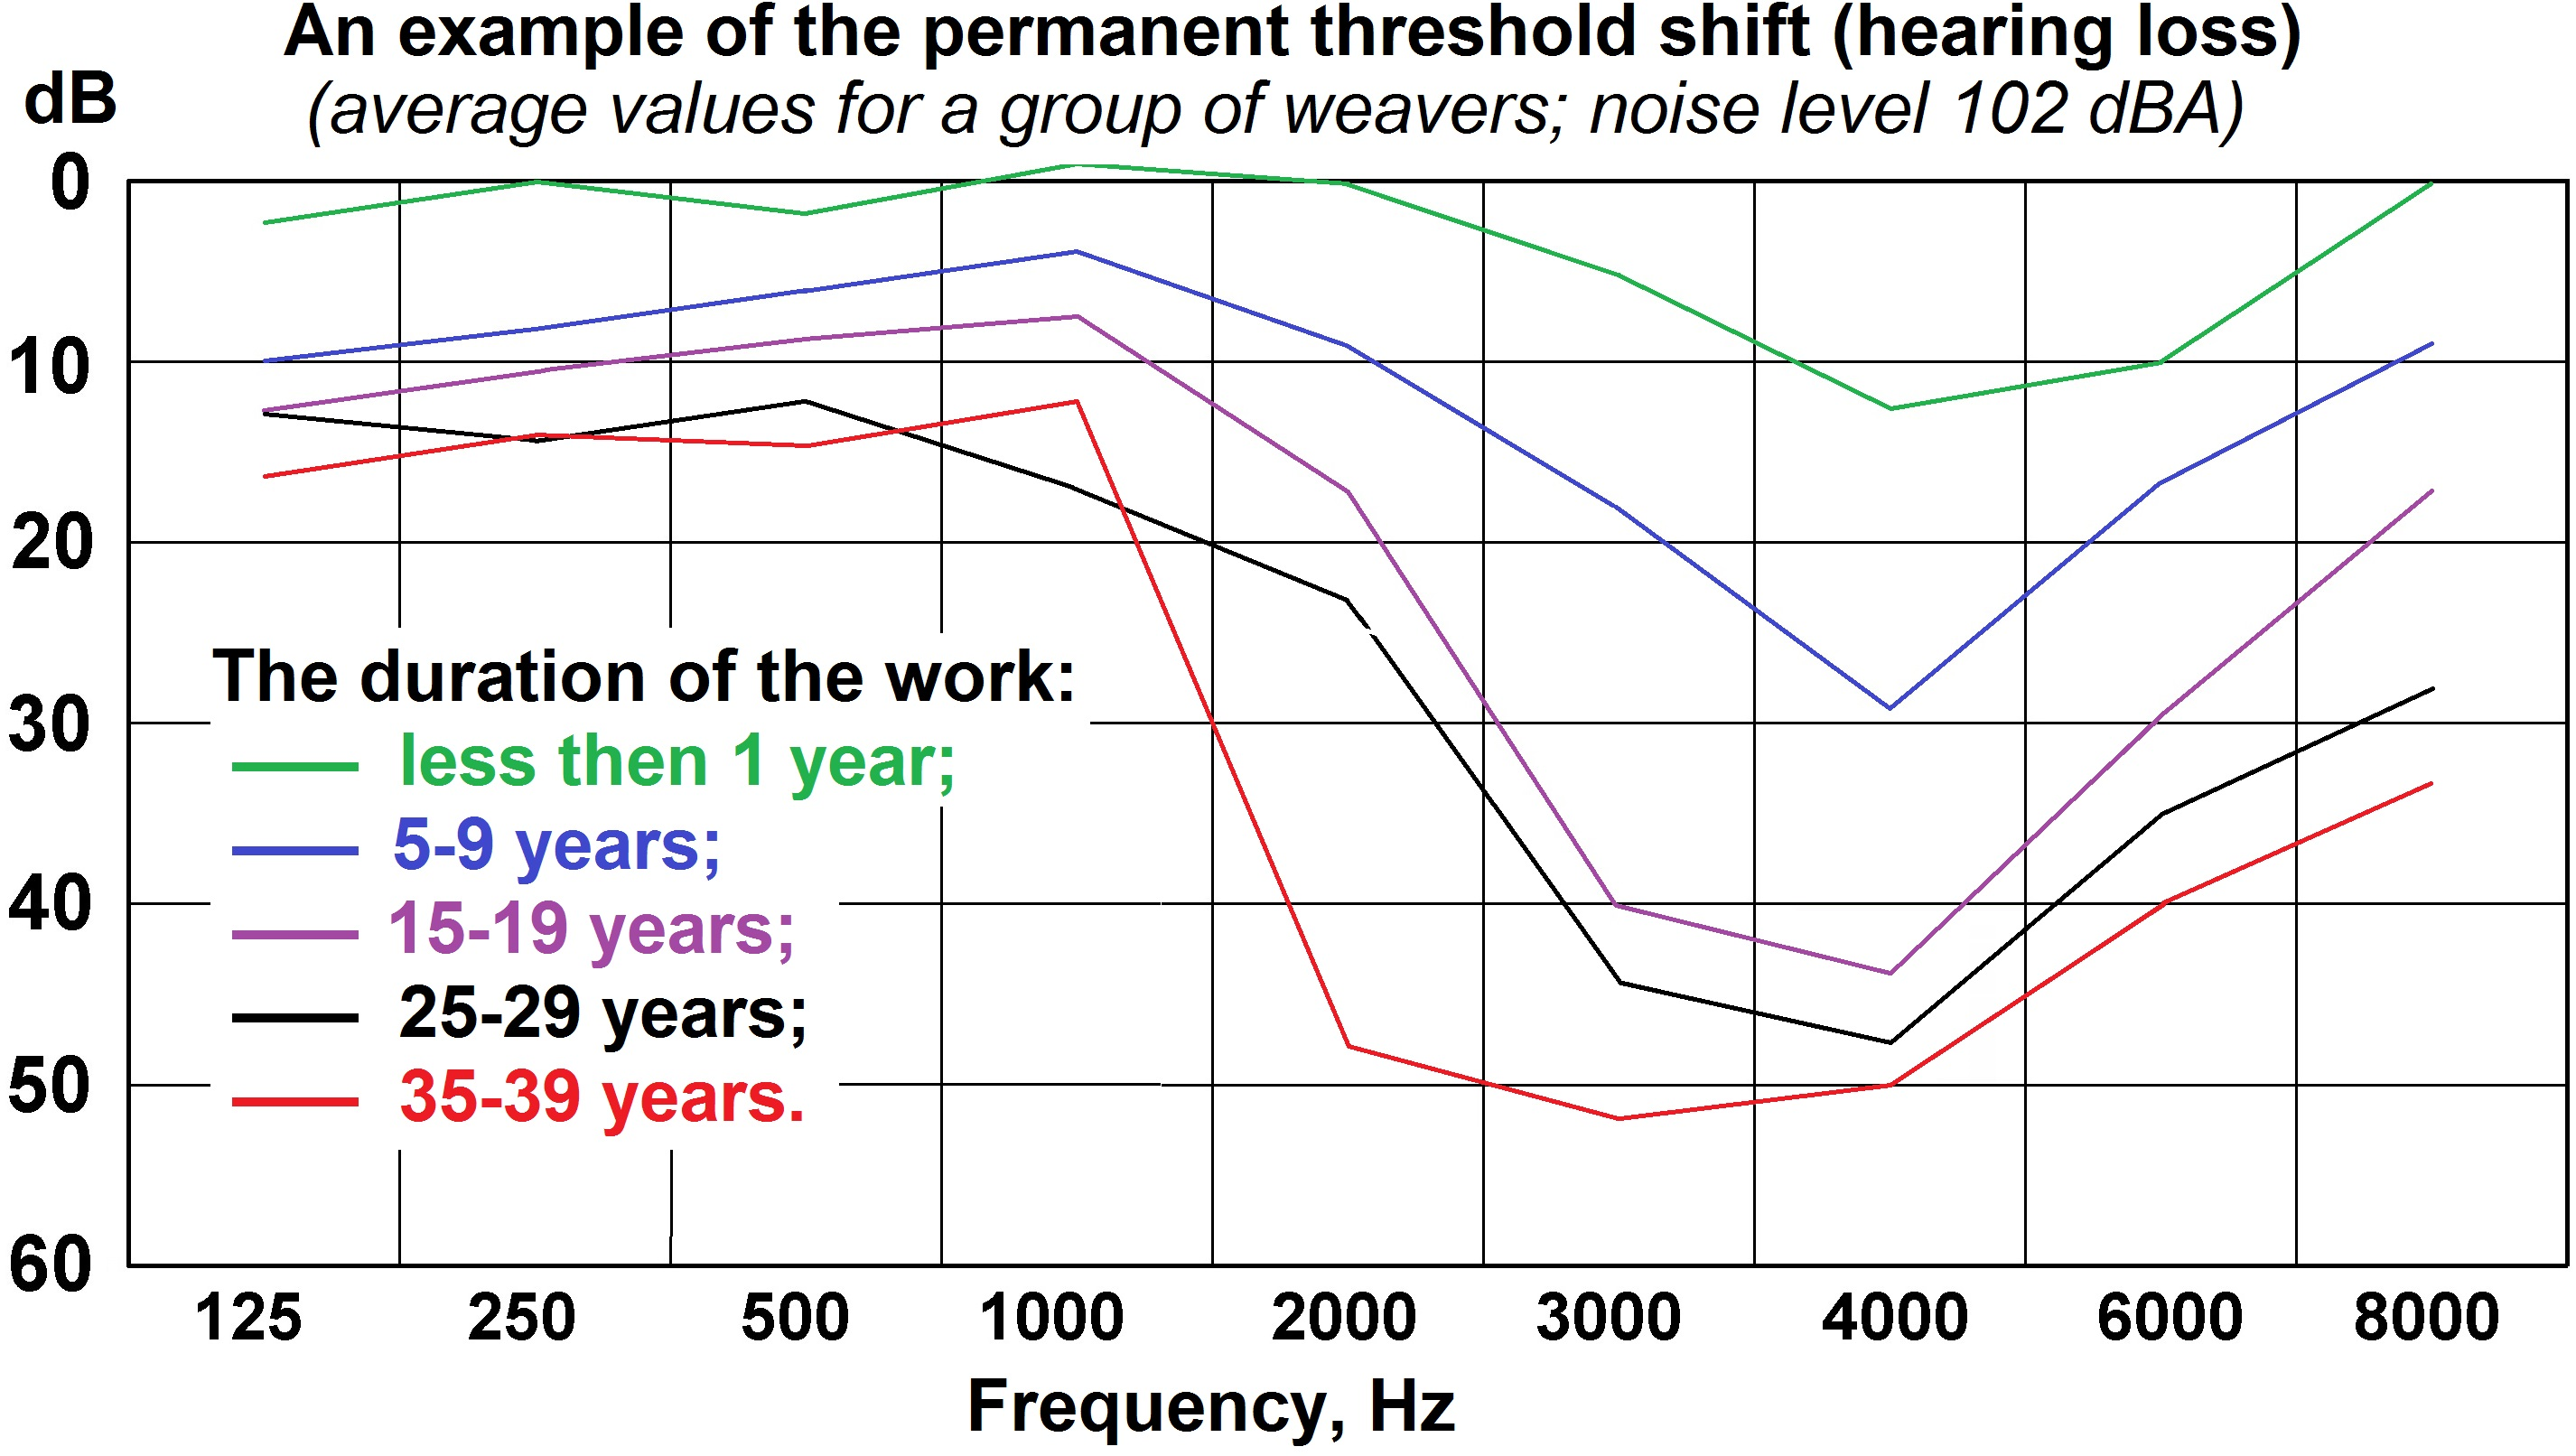 Plot Diagram Example: Permanent threshold shift (hearing loss) after noise exposure ,Chart